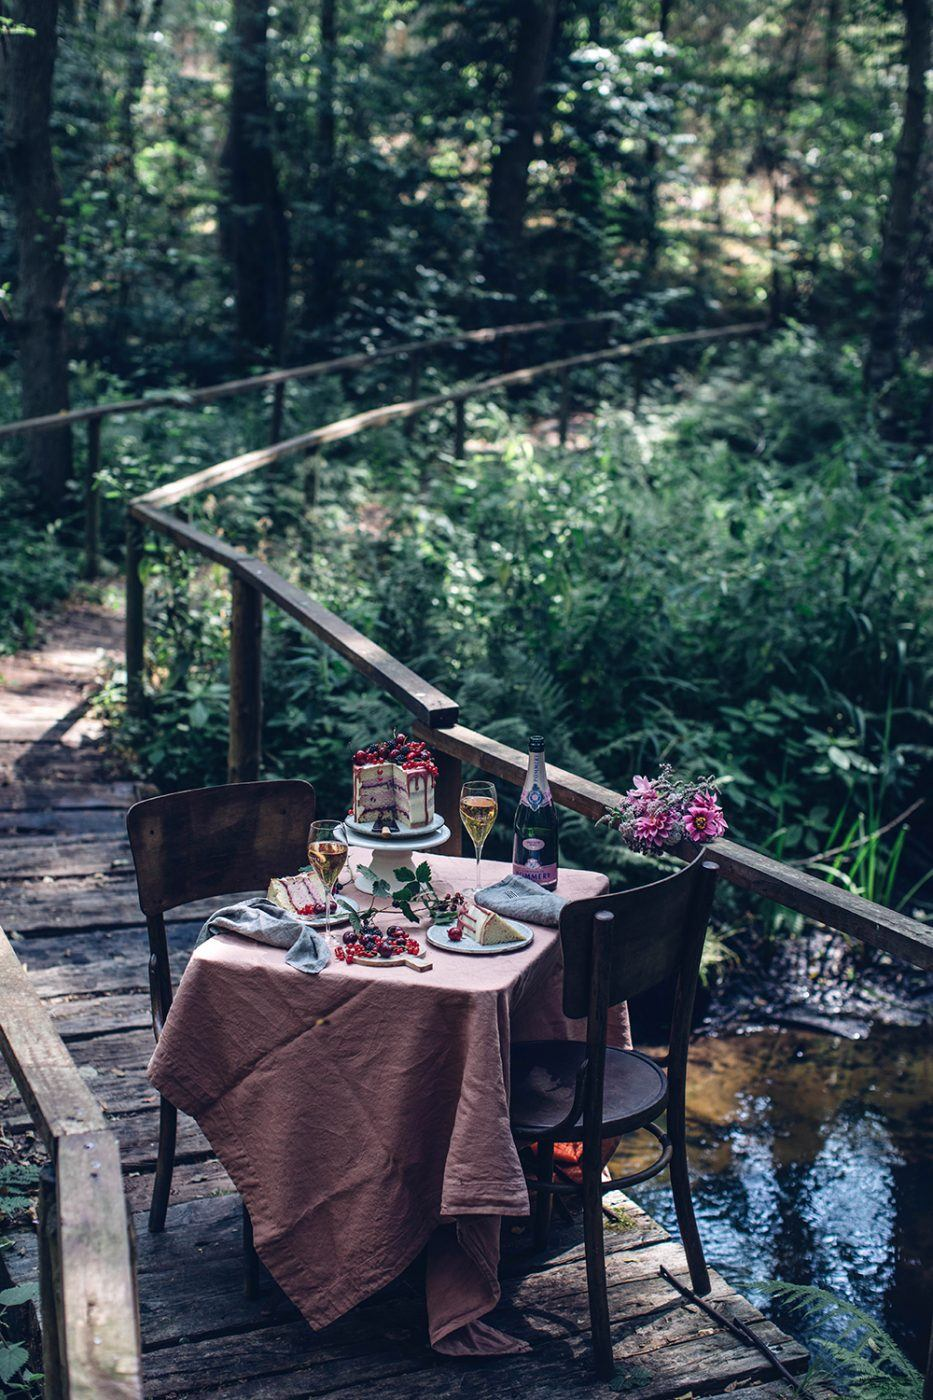 Image for Gluten-free Cherry-Cardamom Cake & a Gathering in the Woods